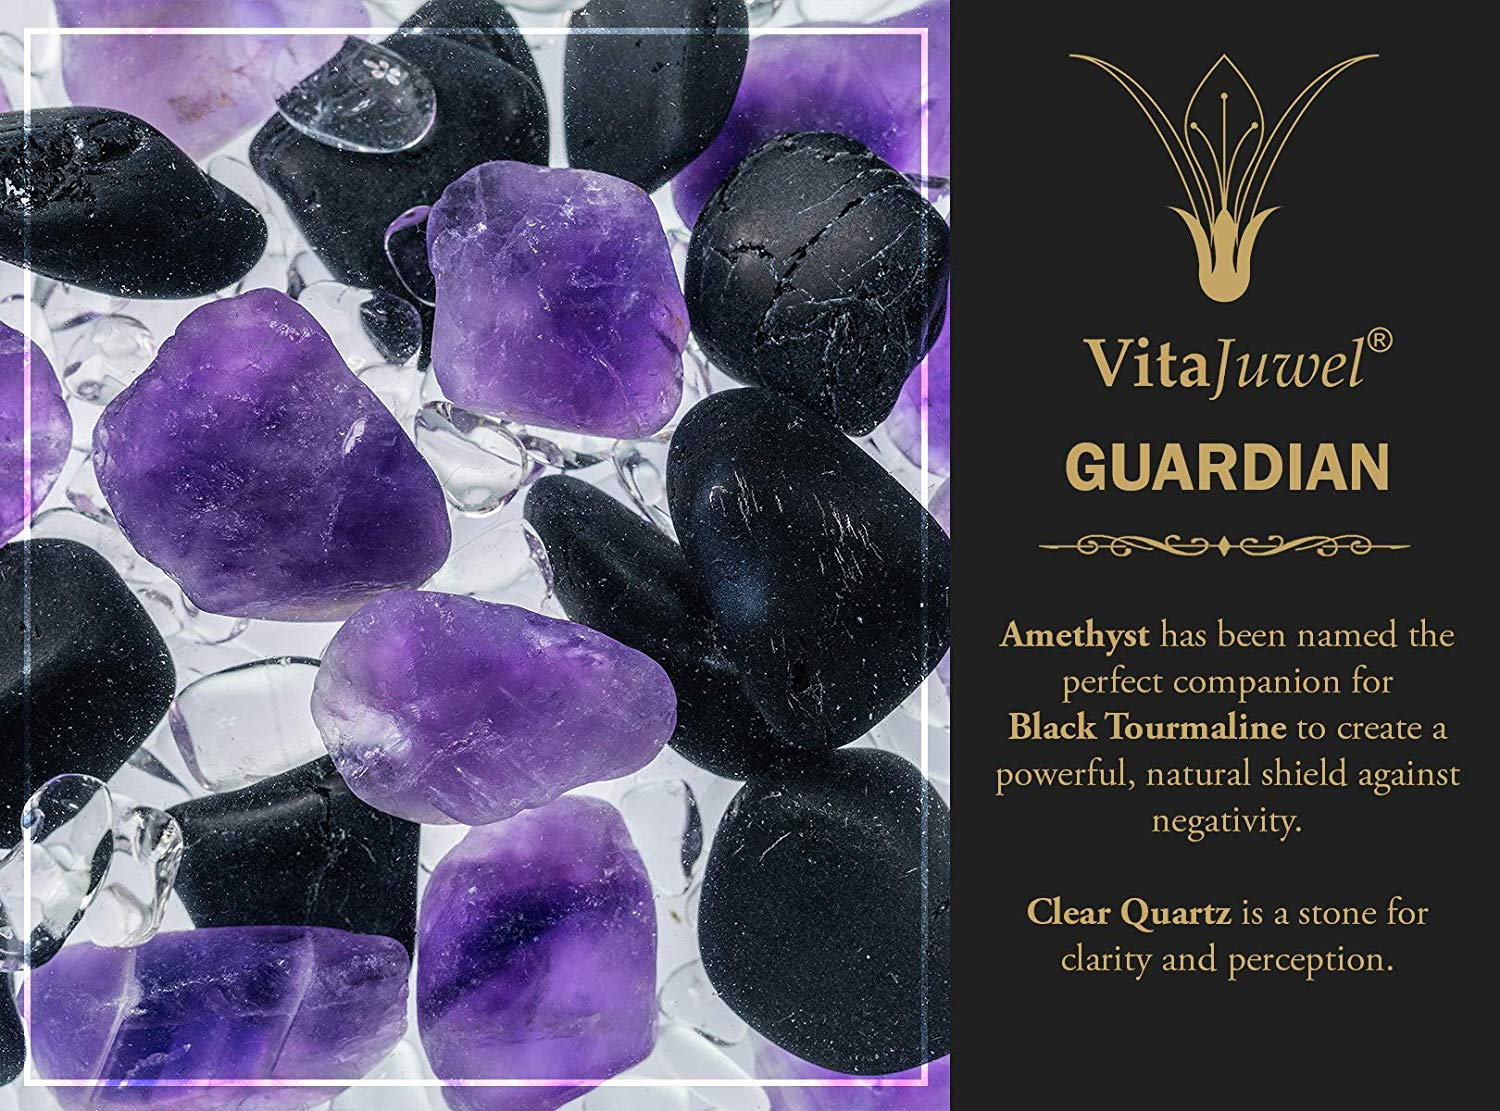 Vitajuwel Era Decanter with GUARDIAN Gemstone Vial. Glass Gemwater Karaffe Pitcher Protection - claritycove.com